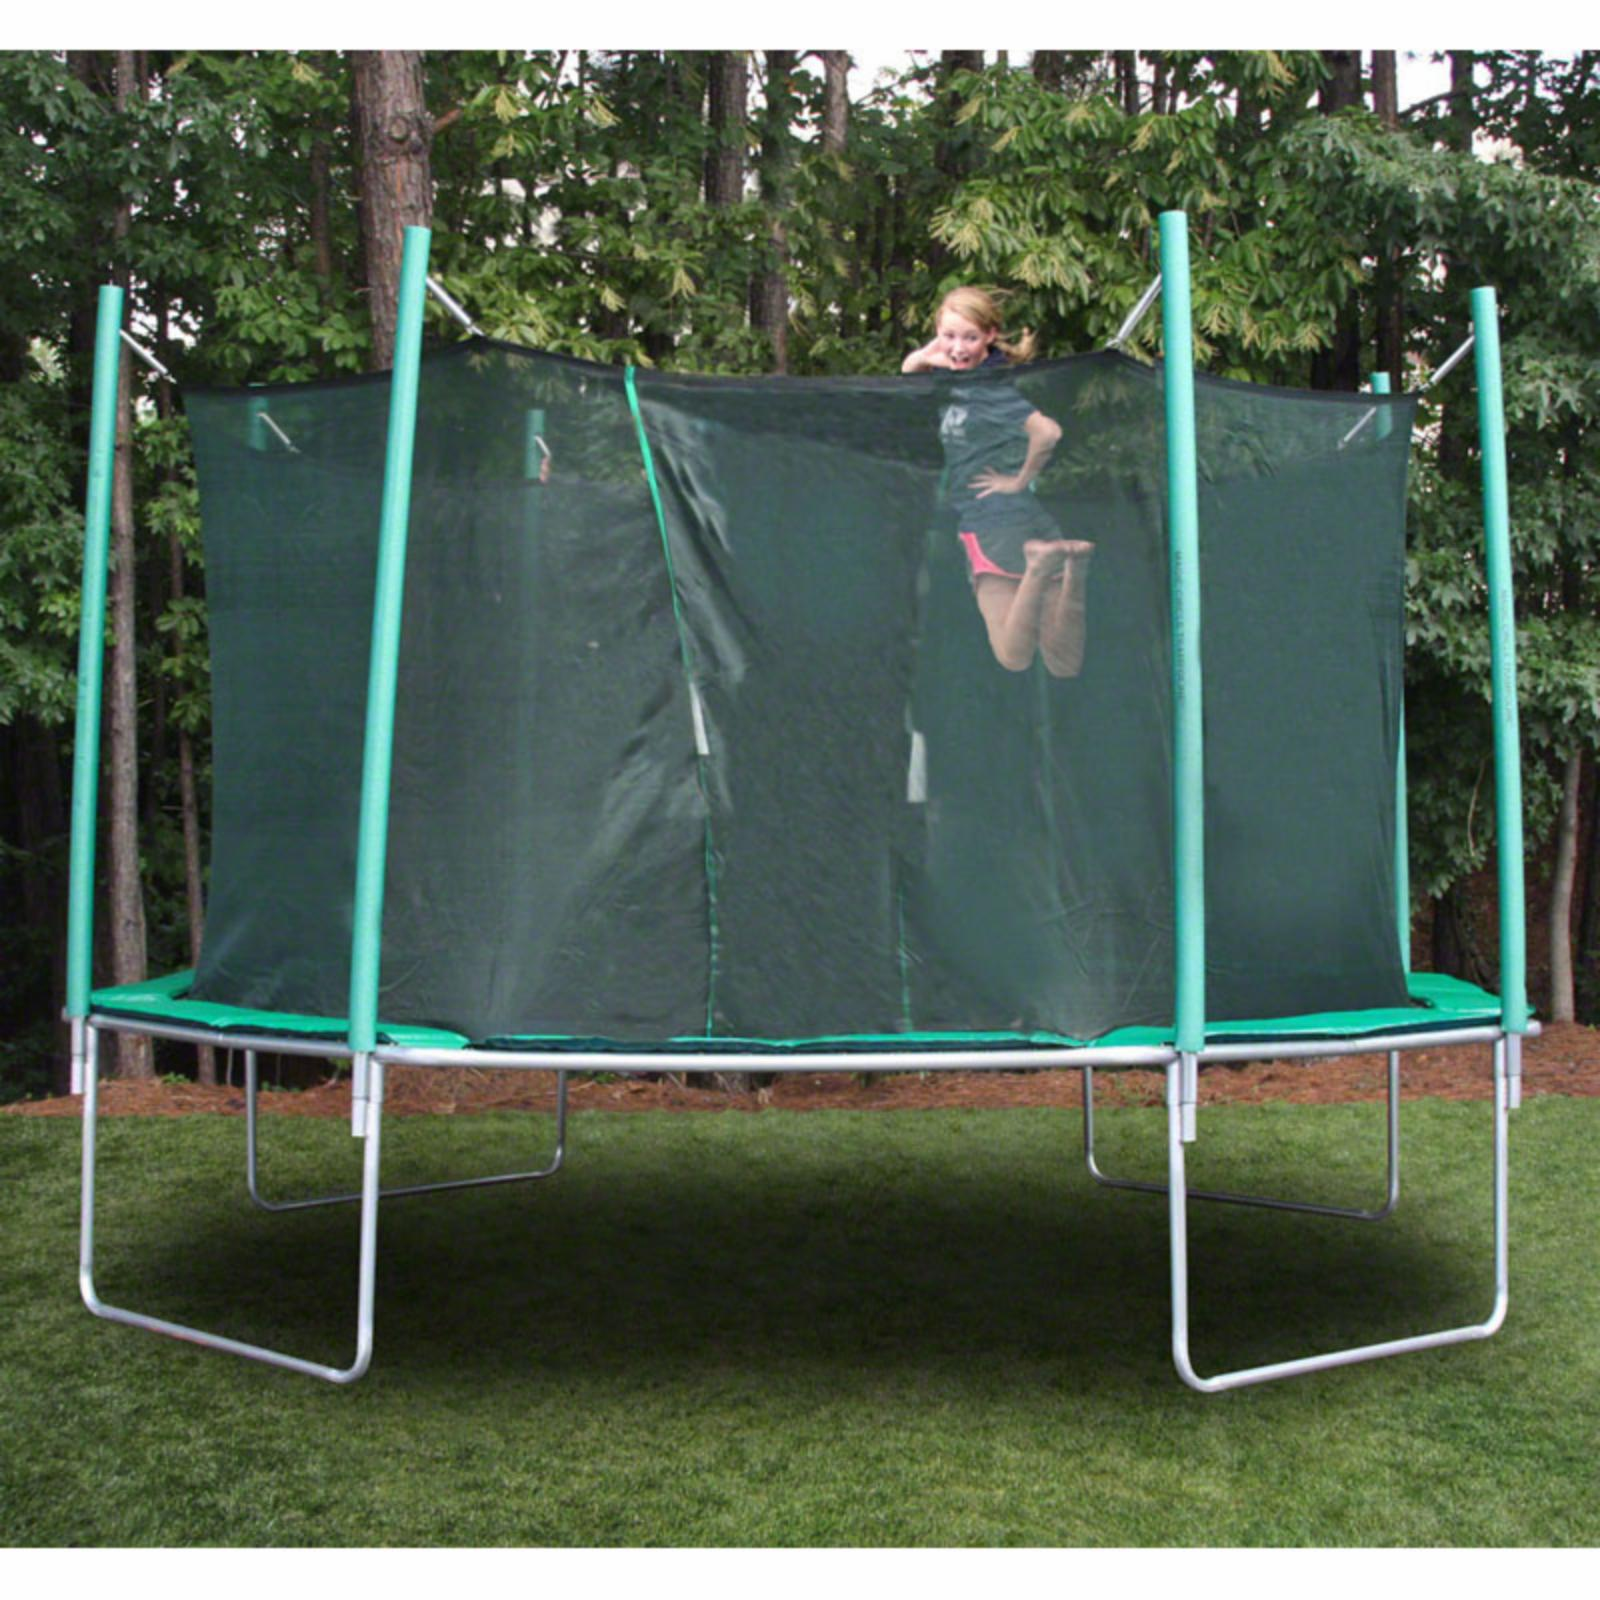 SportsTramp Extreme 16 ft. Octagon Trampoline with Detachable Cage - STE-16-OC